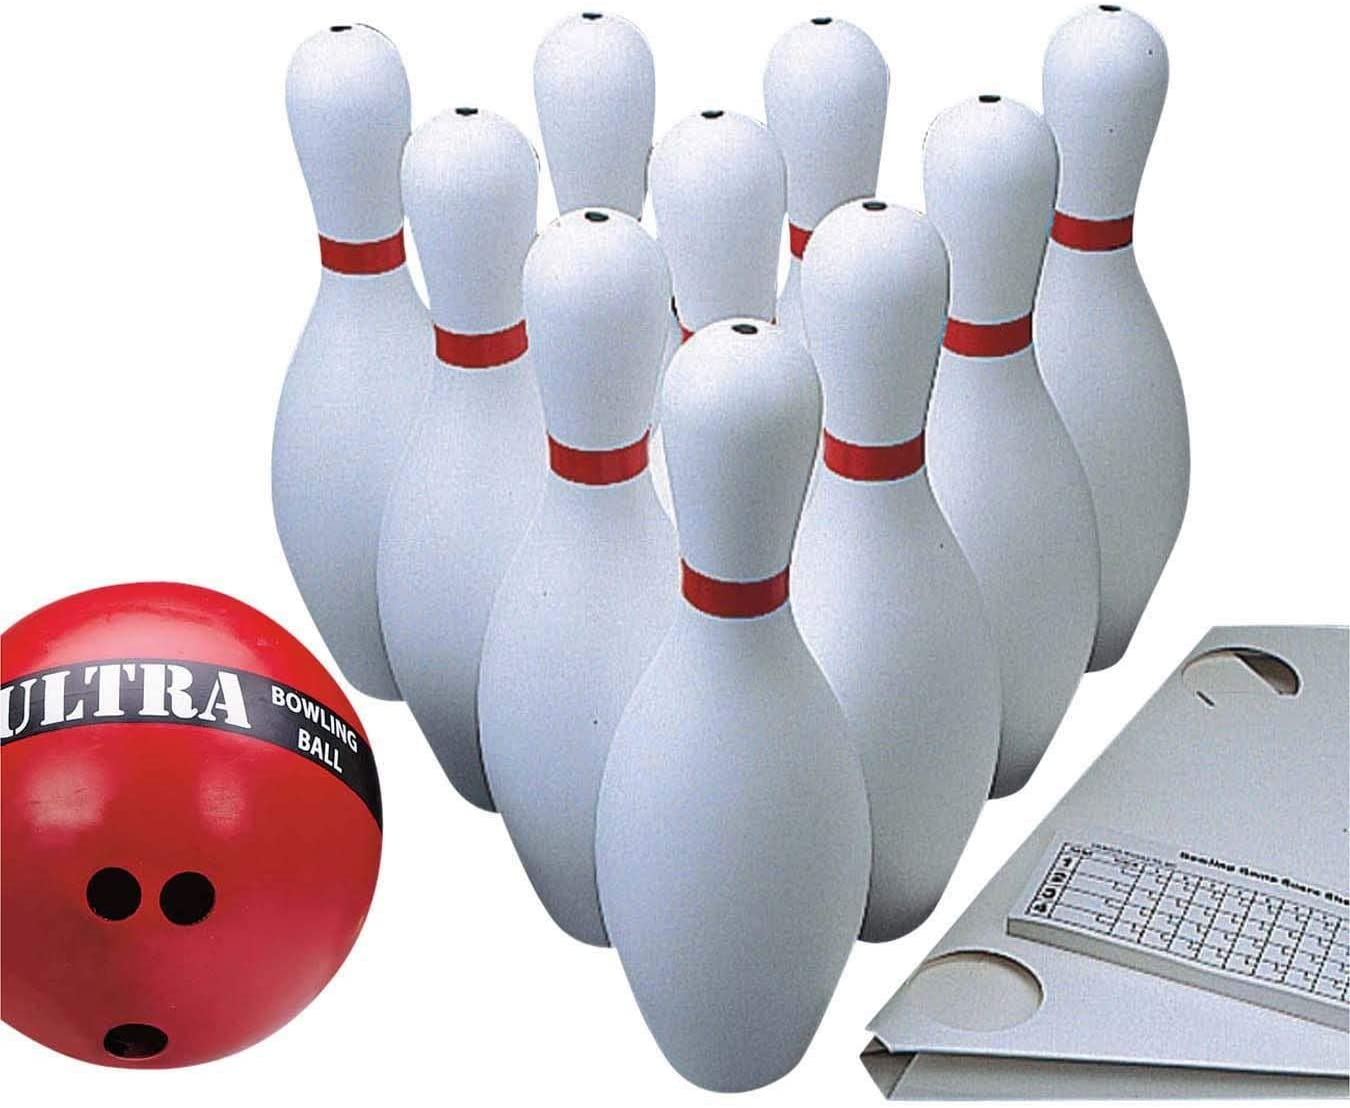 S S Worldwide Bowling Set with 2-1 2 lb. Ball